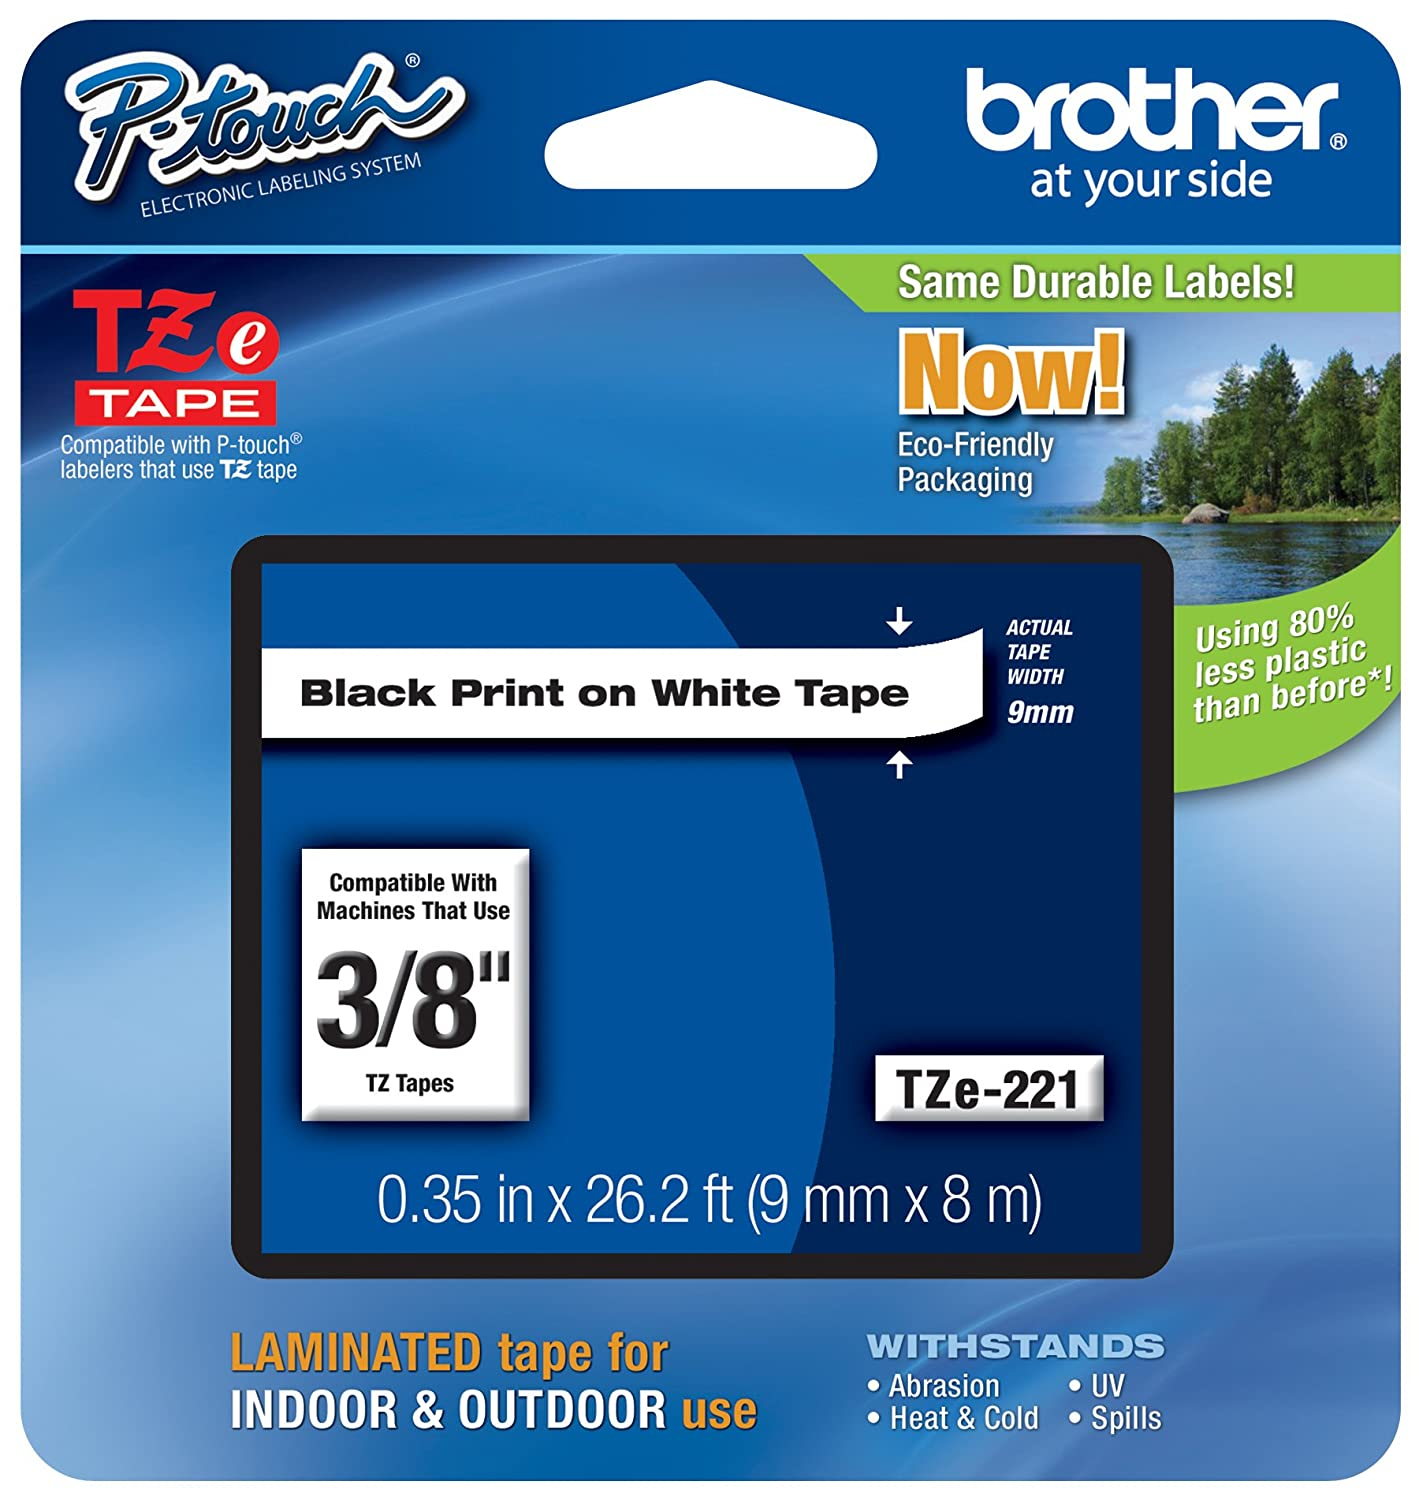 Black on White Single-Pack Laminated for Indoor or Outdoor Use 0.23 Water Resistant Standard Laminated P-touch Tape 8M 26.2 Feet Brother Genuine P-touch TZE-211 Label Tape 1 1//4